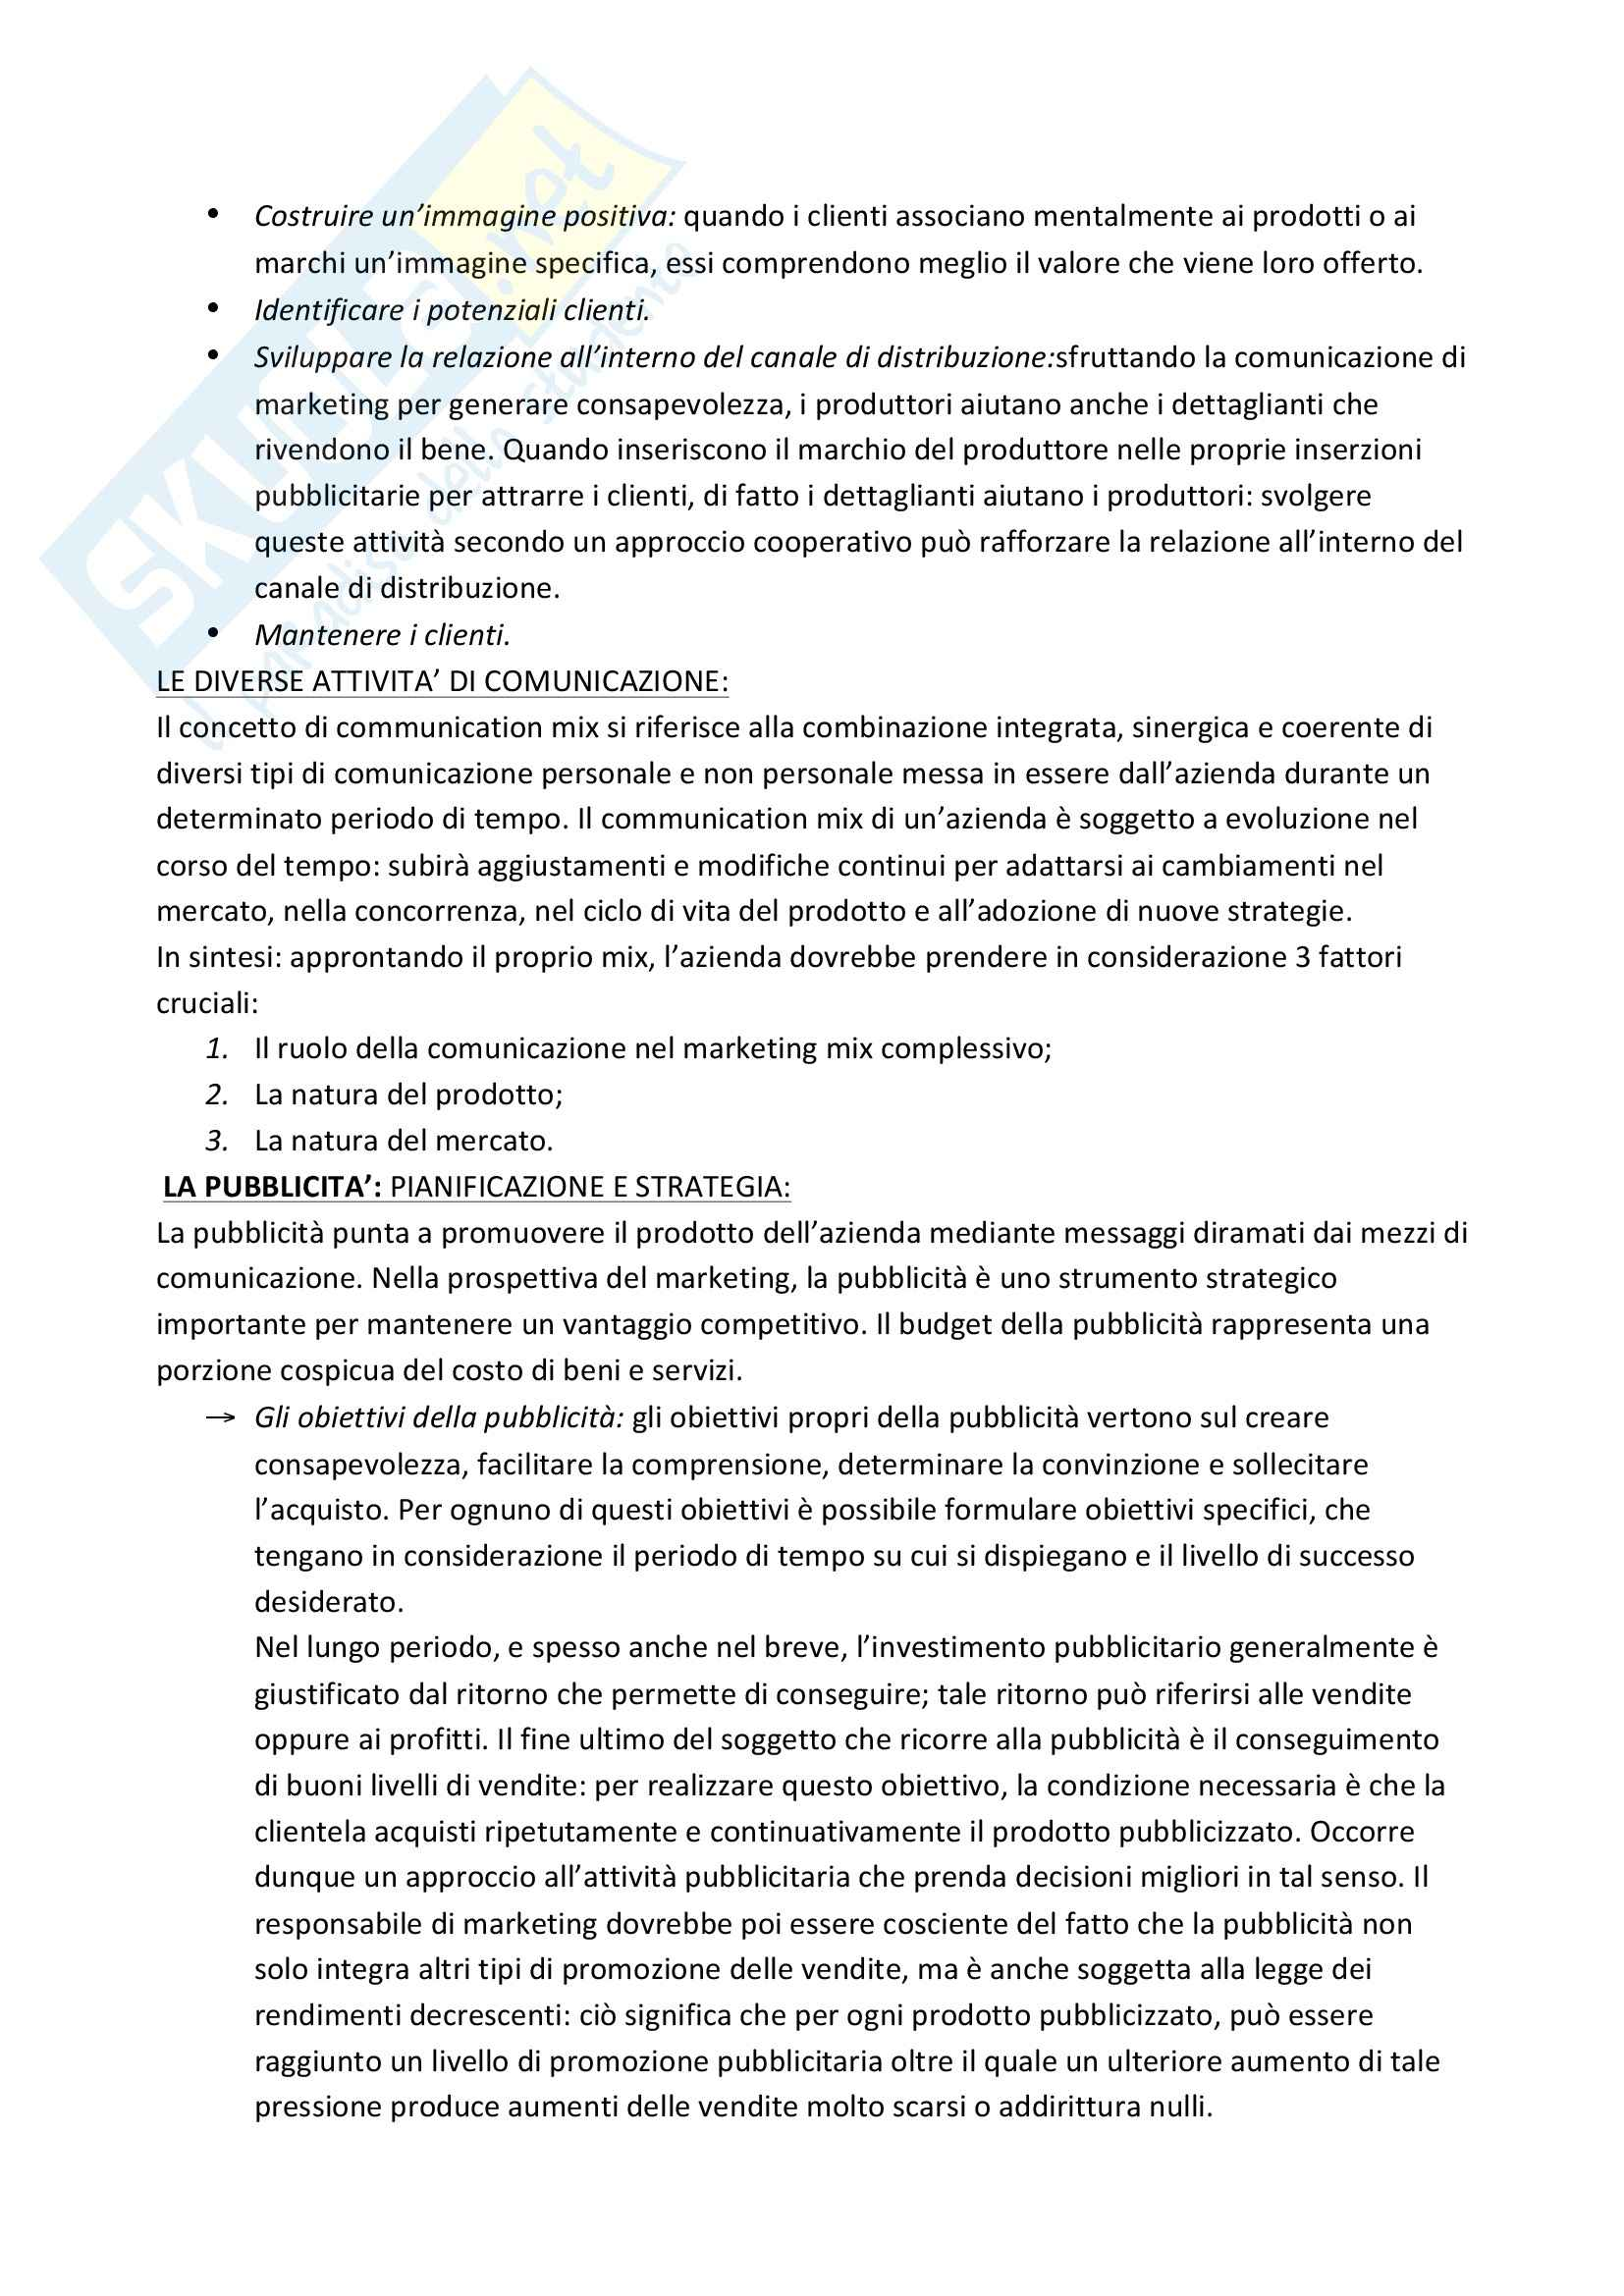 Riassunto esame Marketing, prof. Garibaldi, libro consigliato Marketing di Peter, Donnelly e Pratesi Pag. 31